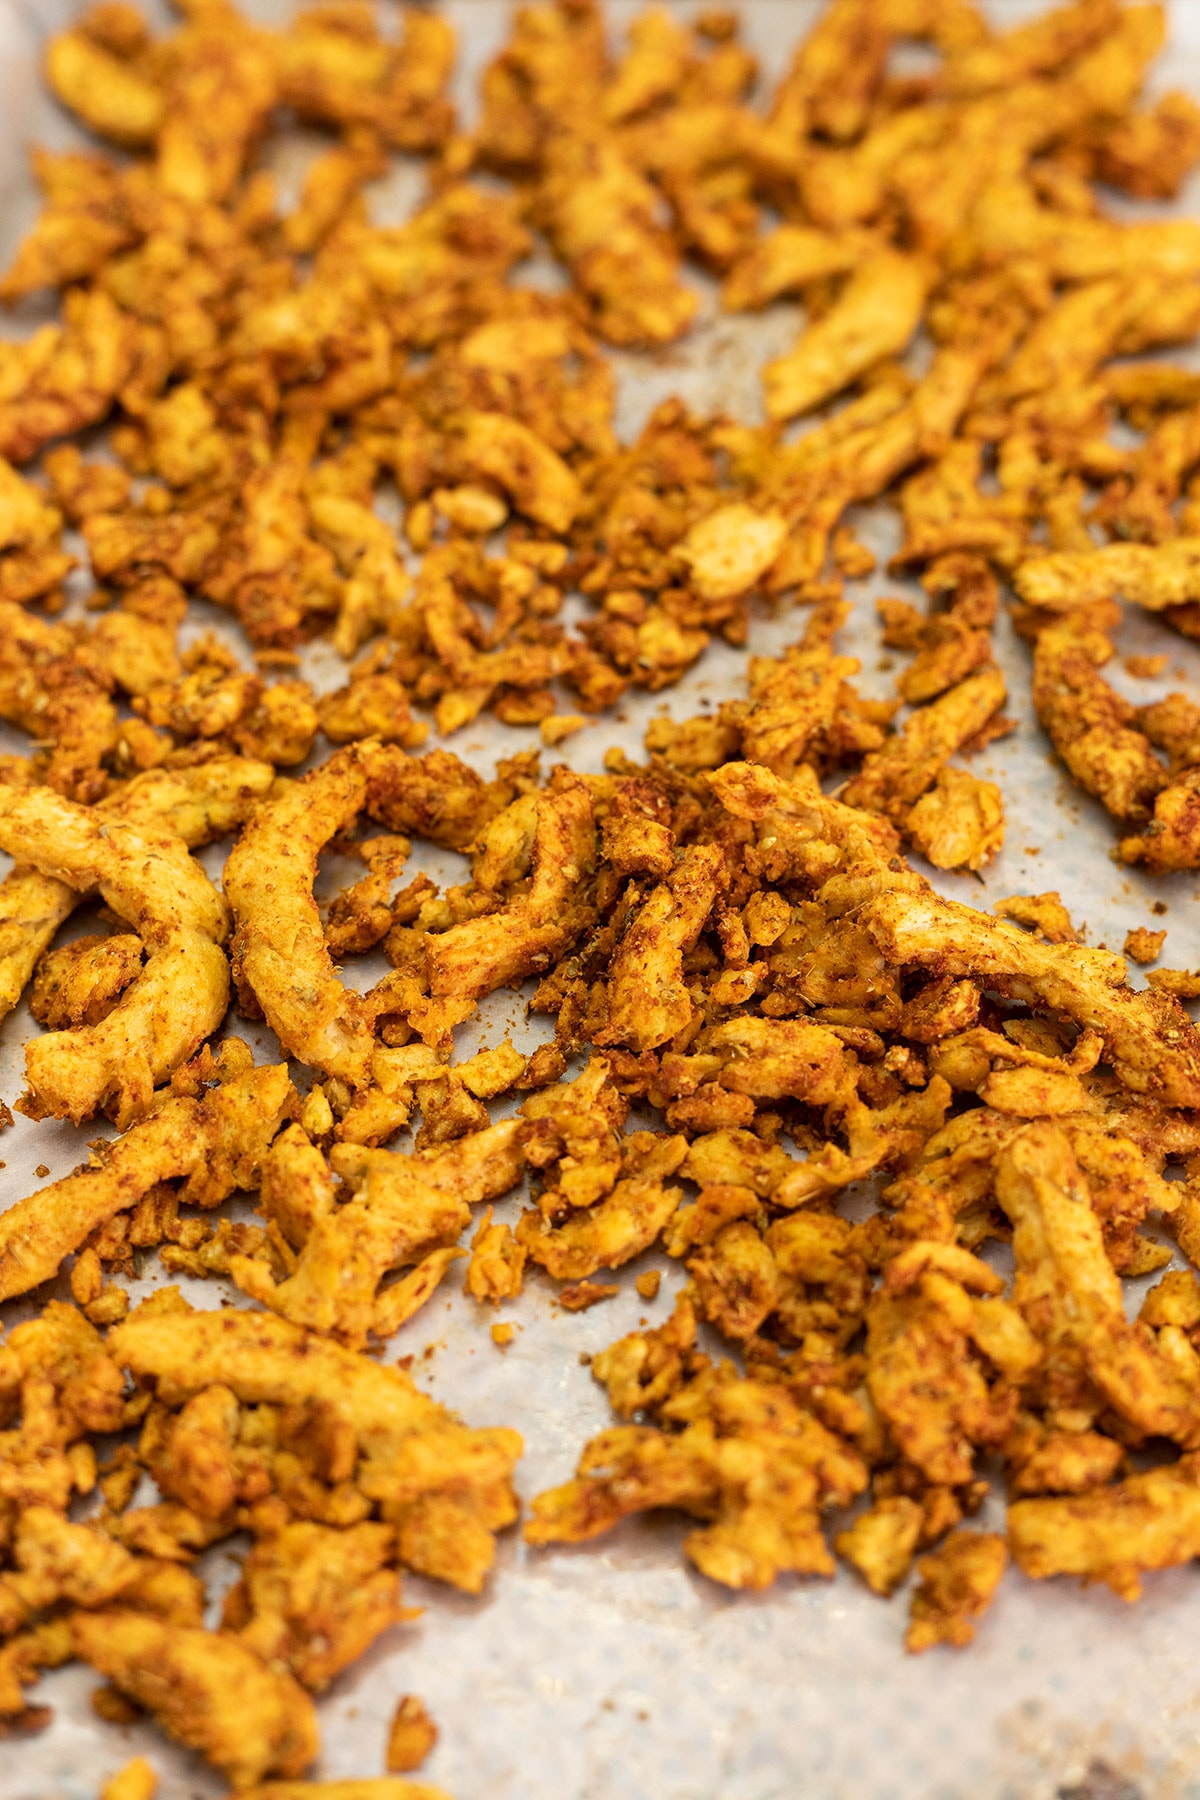 Baked soy curls on a baking sheet